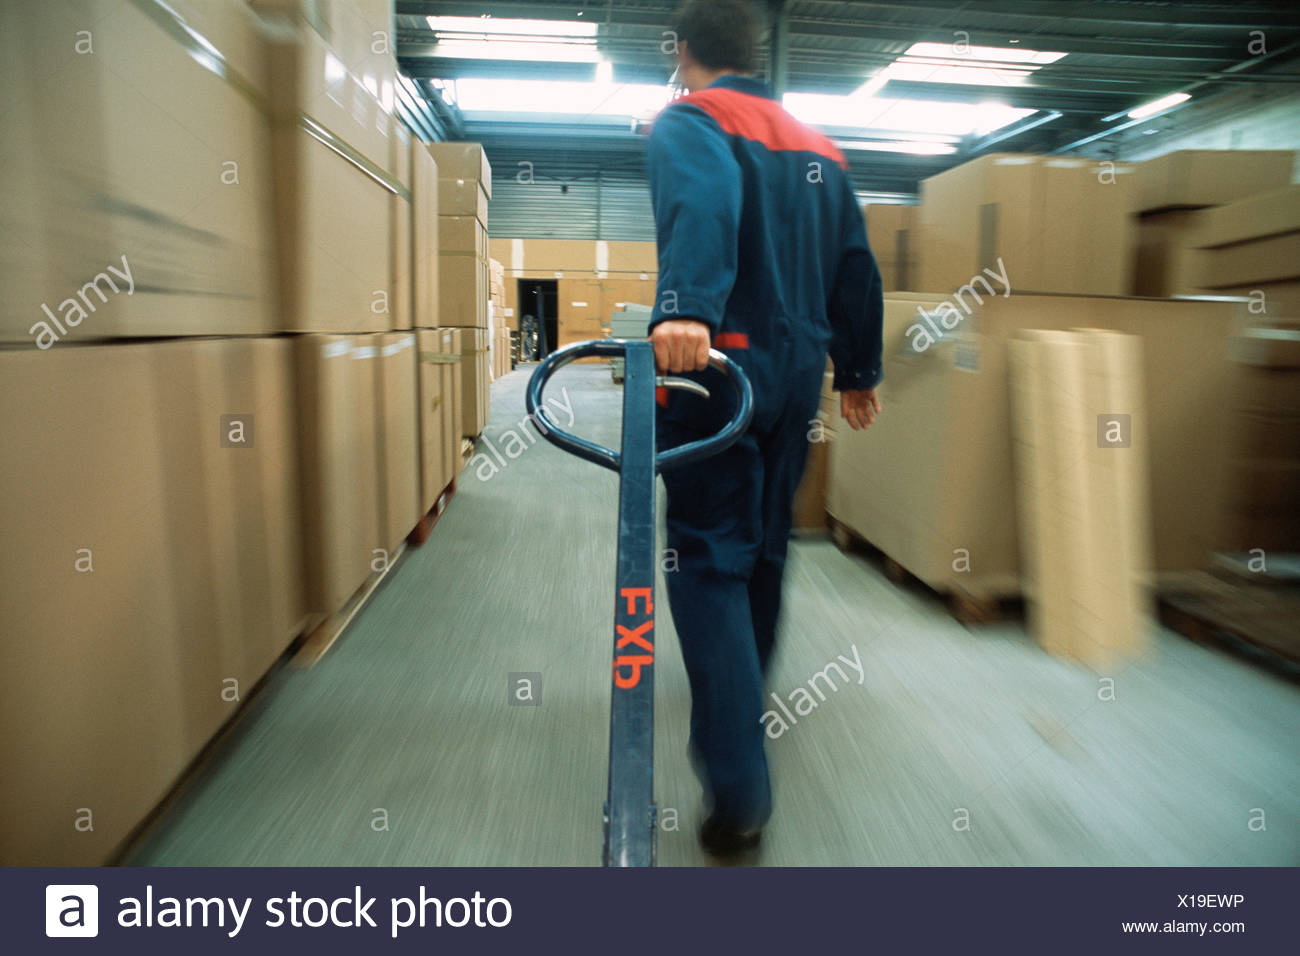 Warehouse worker - Stock Image